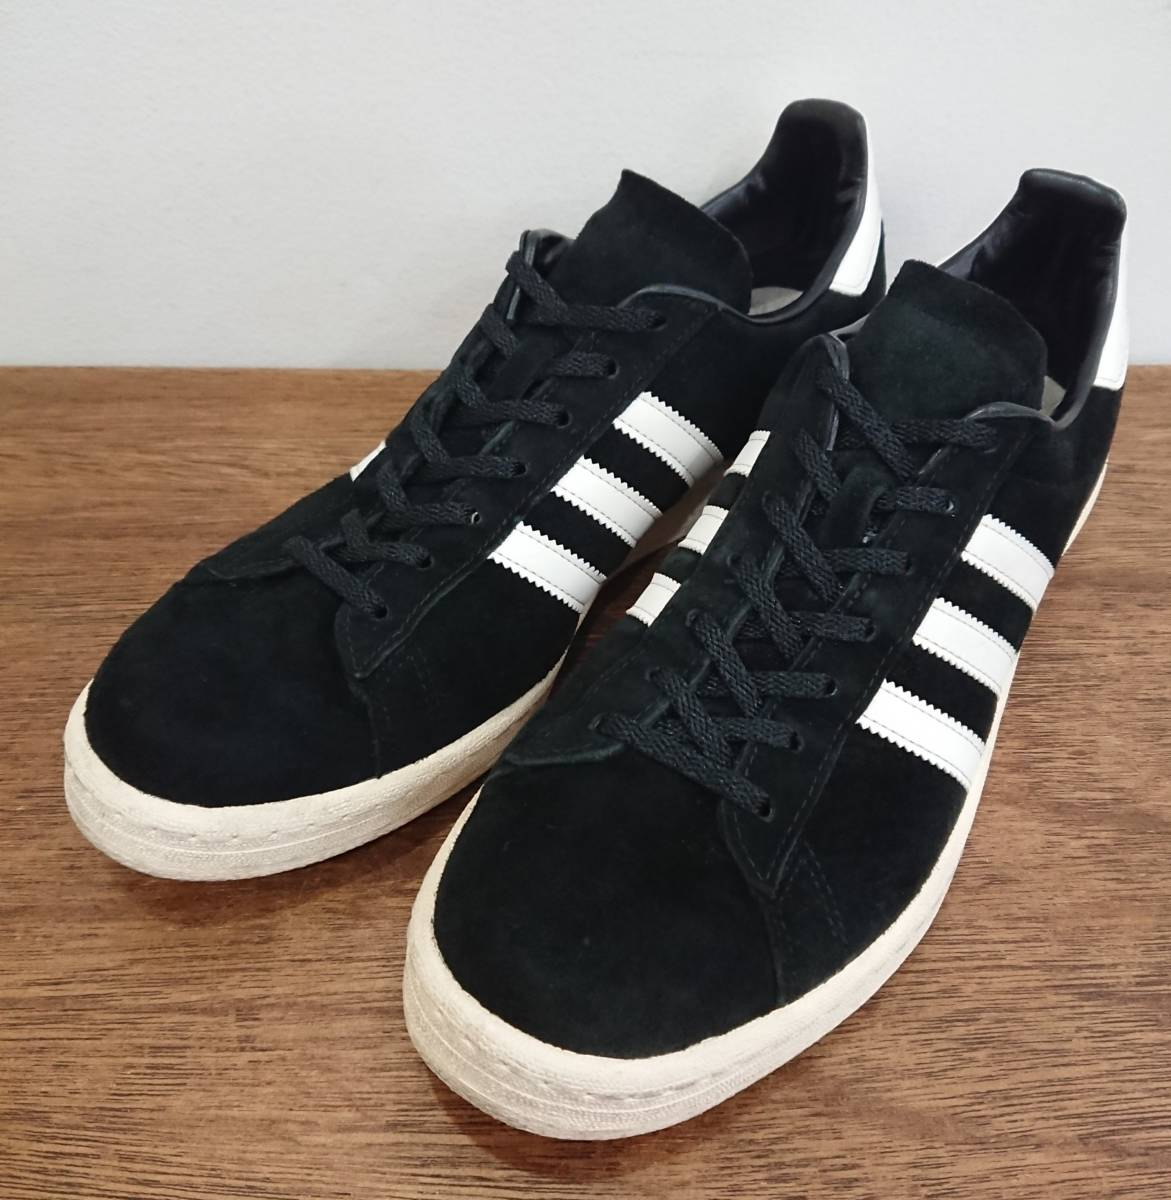 reputable site f26b9 9eb41 1 jpy ~adidas CP 80s JAPAN PACK VNTG sizeUS10.5(28.5cm) black campus  CAMPUS suede sneakers leather reissue black Adidas